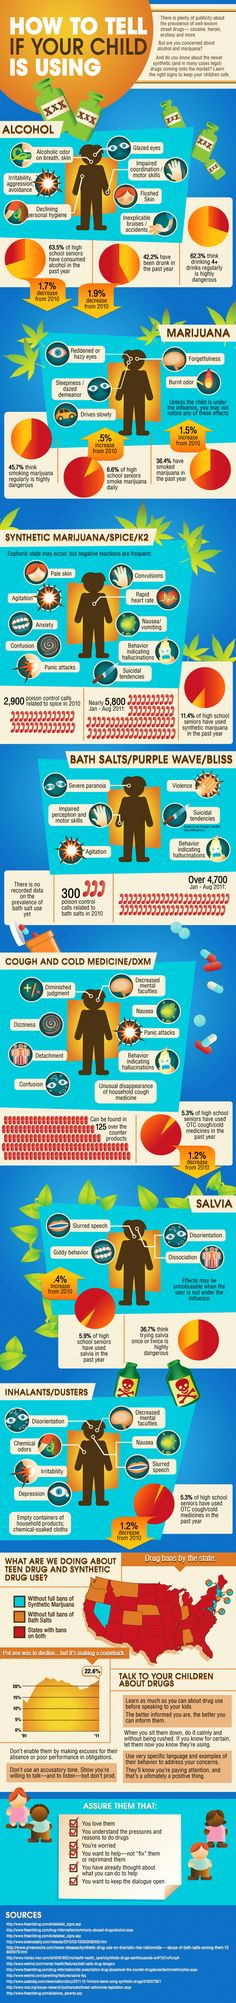 SIGNS AND SYMPTOMS OF TEEN DRUG USE (INFOGRAPHIC)